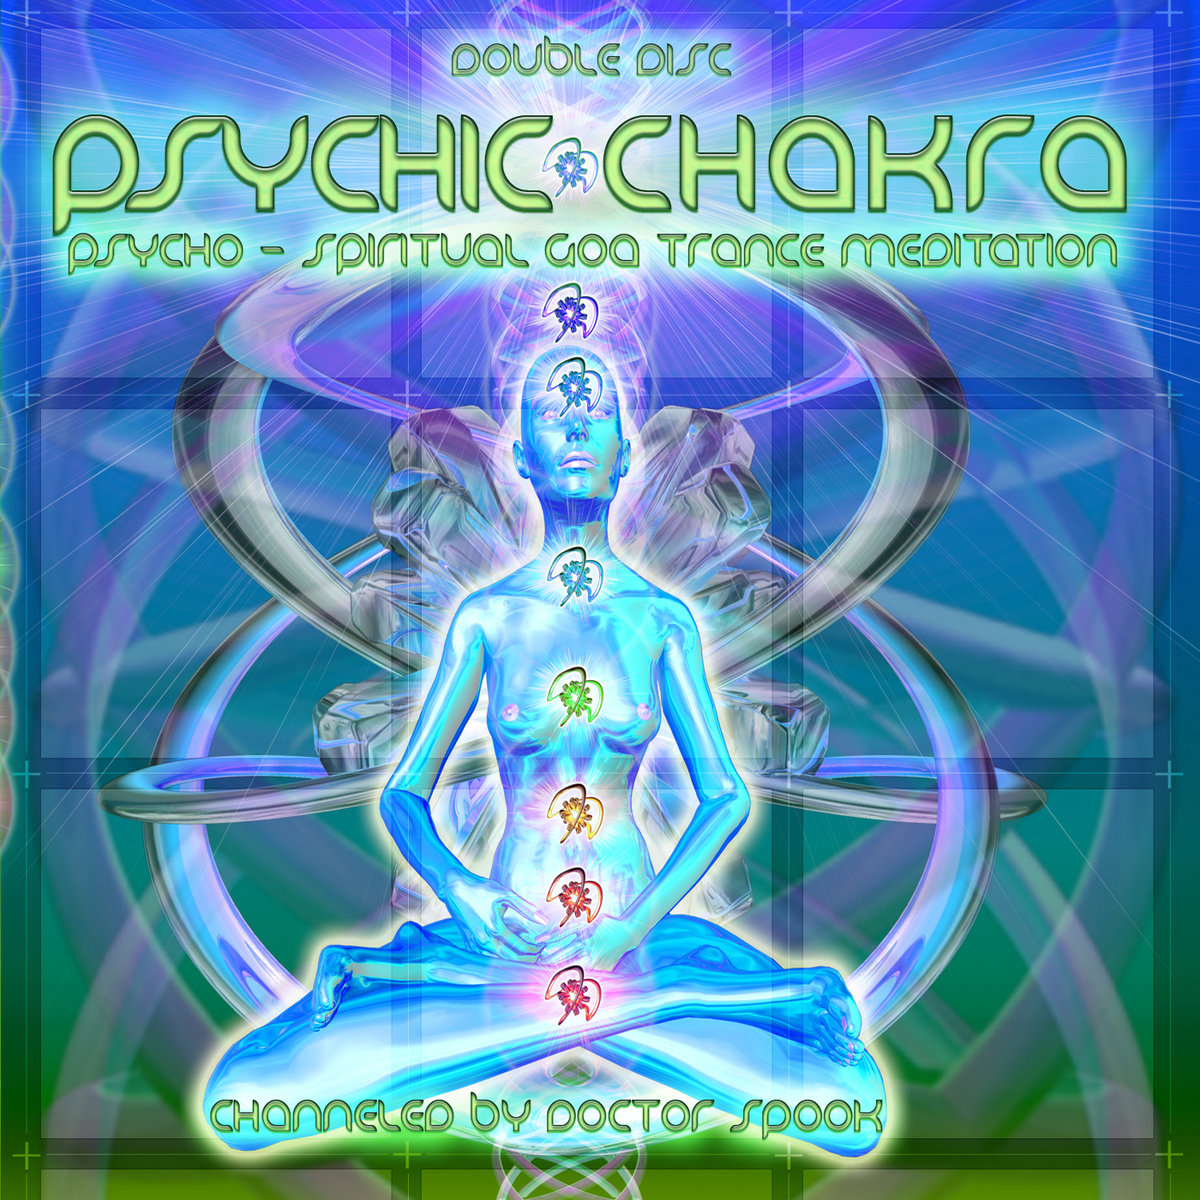 Ibojima - Natural Spirit @ 'Various Artists - Psychic Chakra (Channeled by Dr. Spook)' album (electronic, psychic chakra)